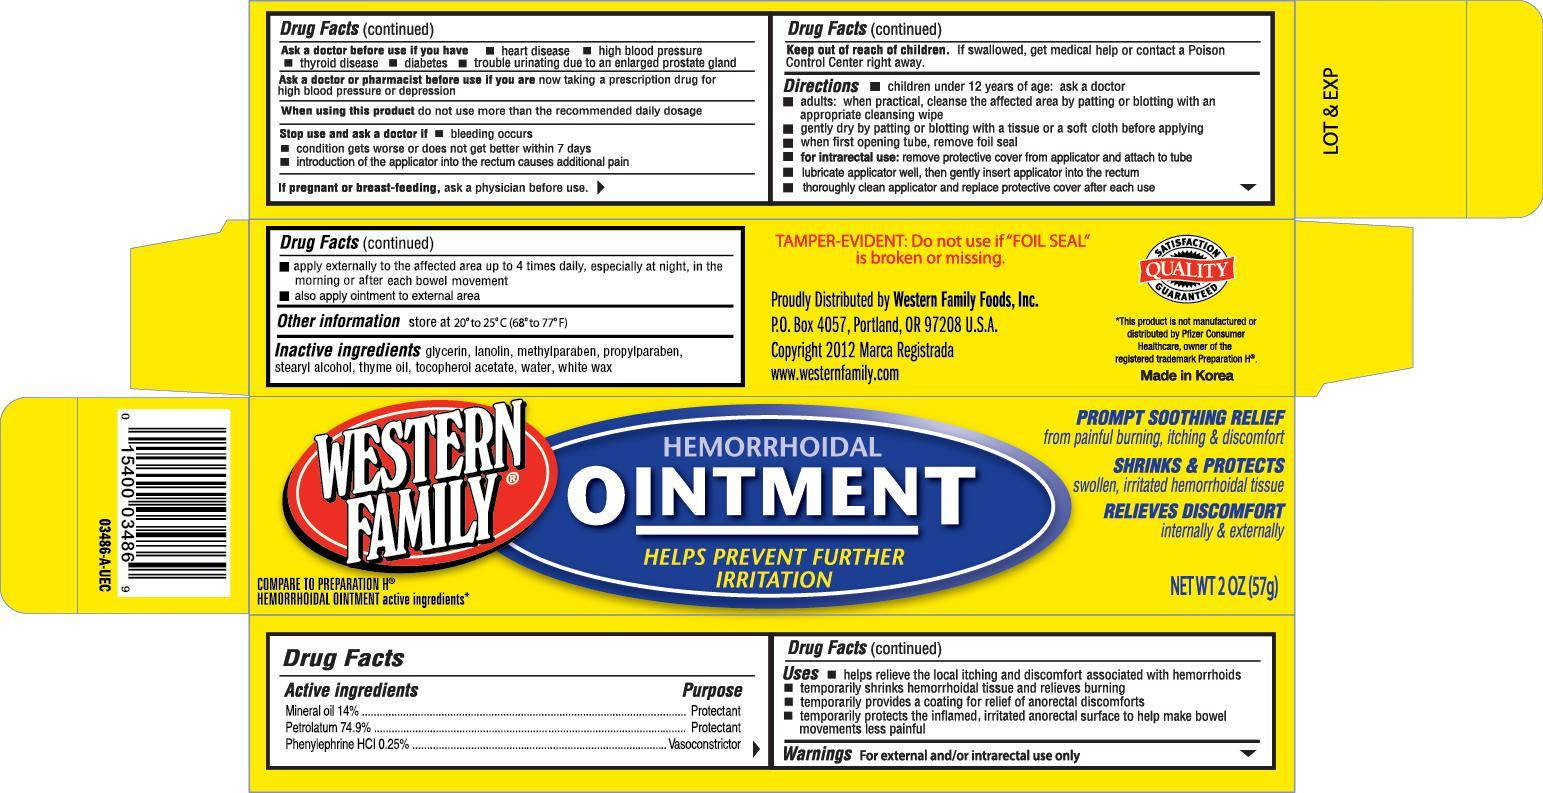 Western Family Hemorrhoidal (Mineral Oil) Ointment [Western Family Food, Inc.]